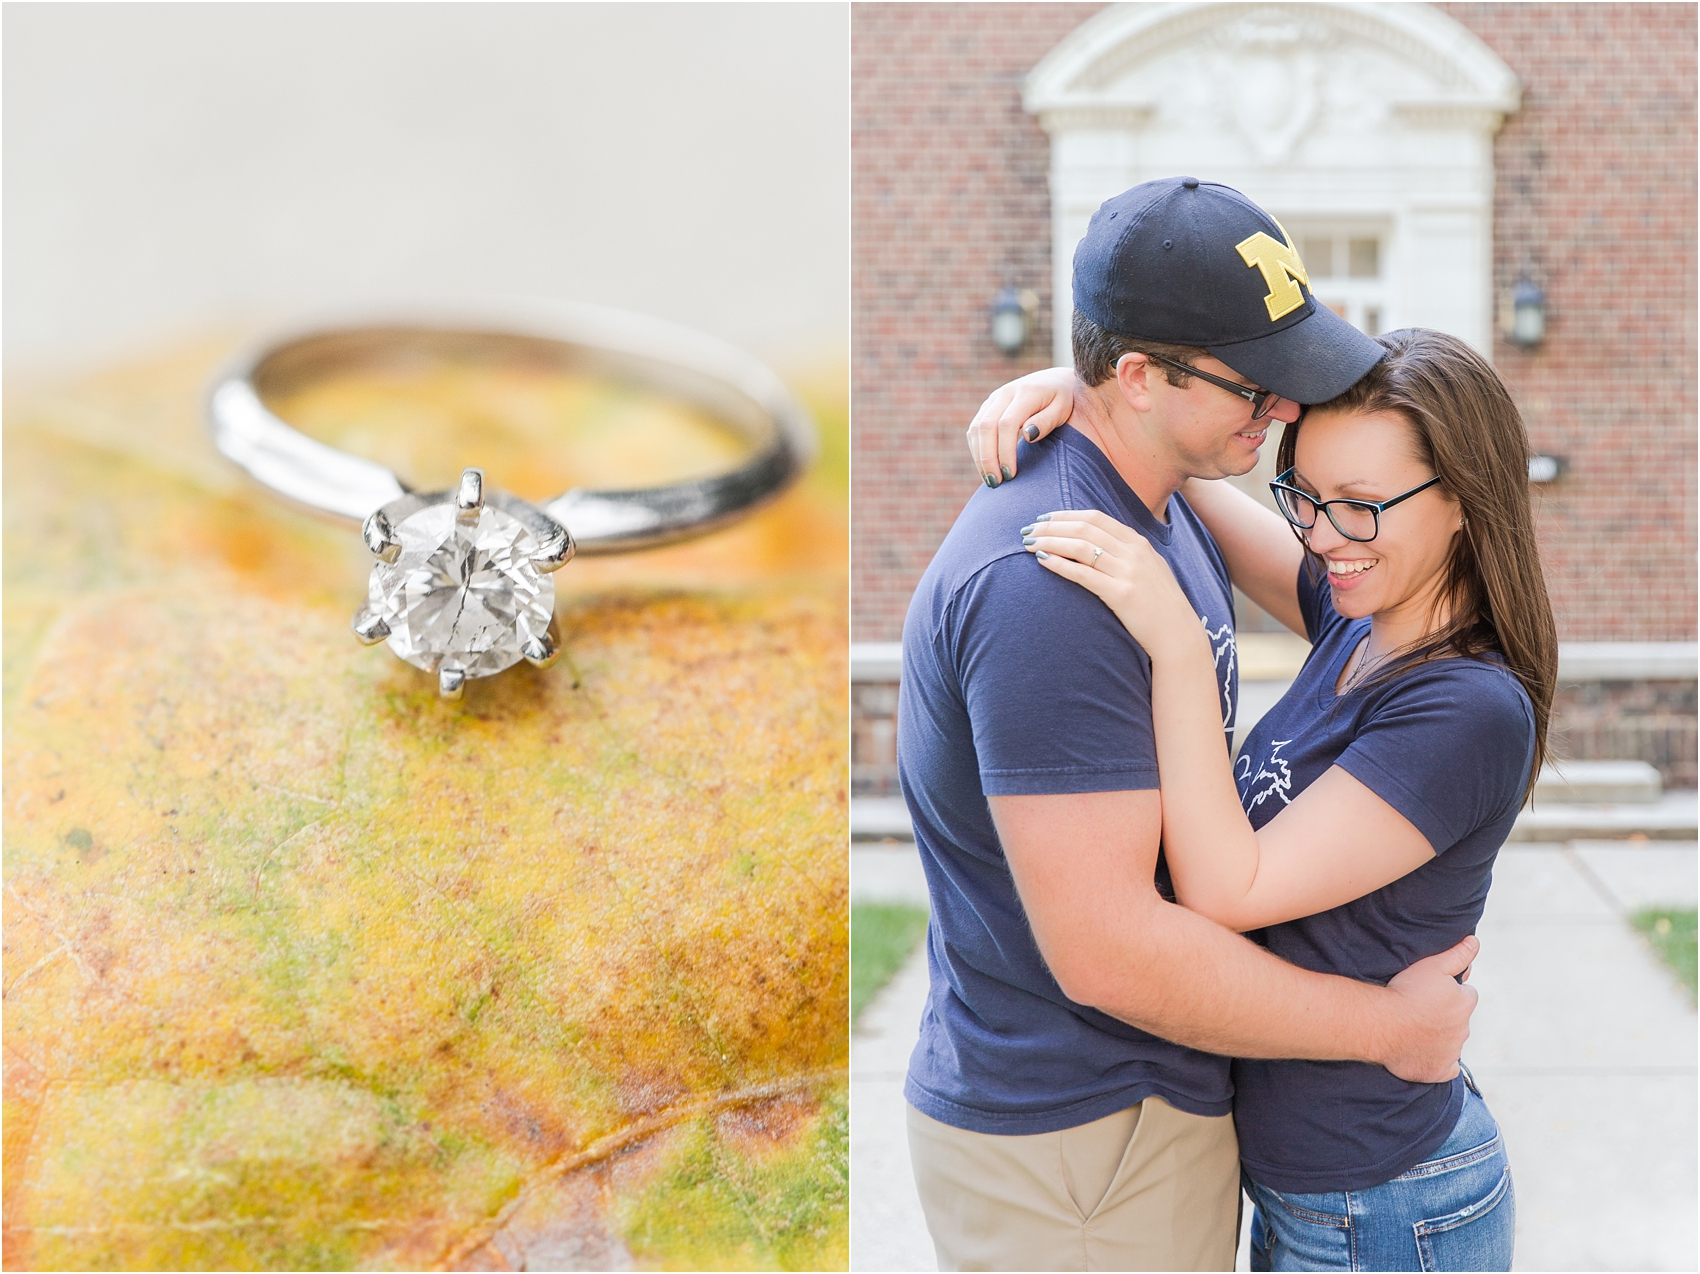 emotional-candid-romantic-engagement-photos-in-detroit-chicago-northern-michigan-by-courtney-carolyn-photography_0023.jpg